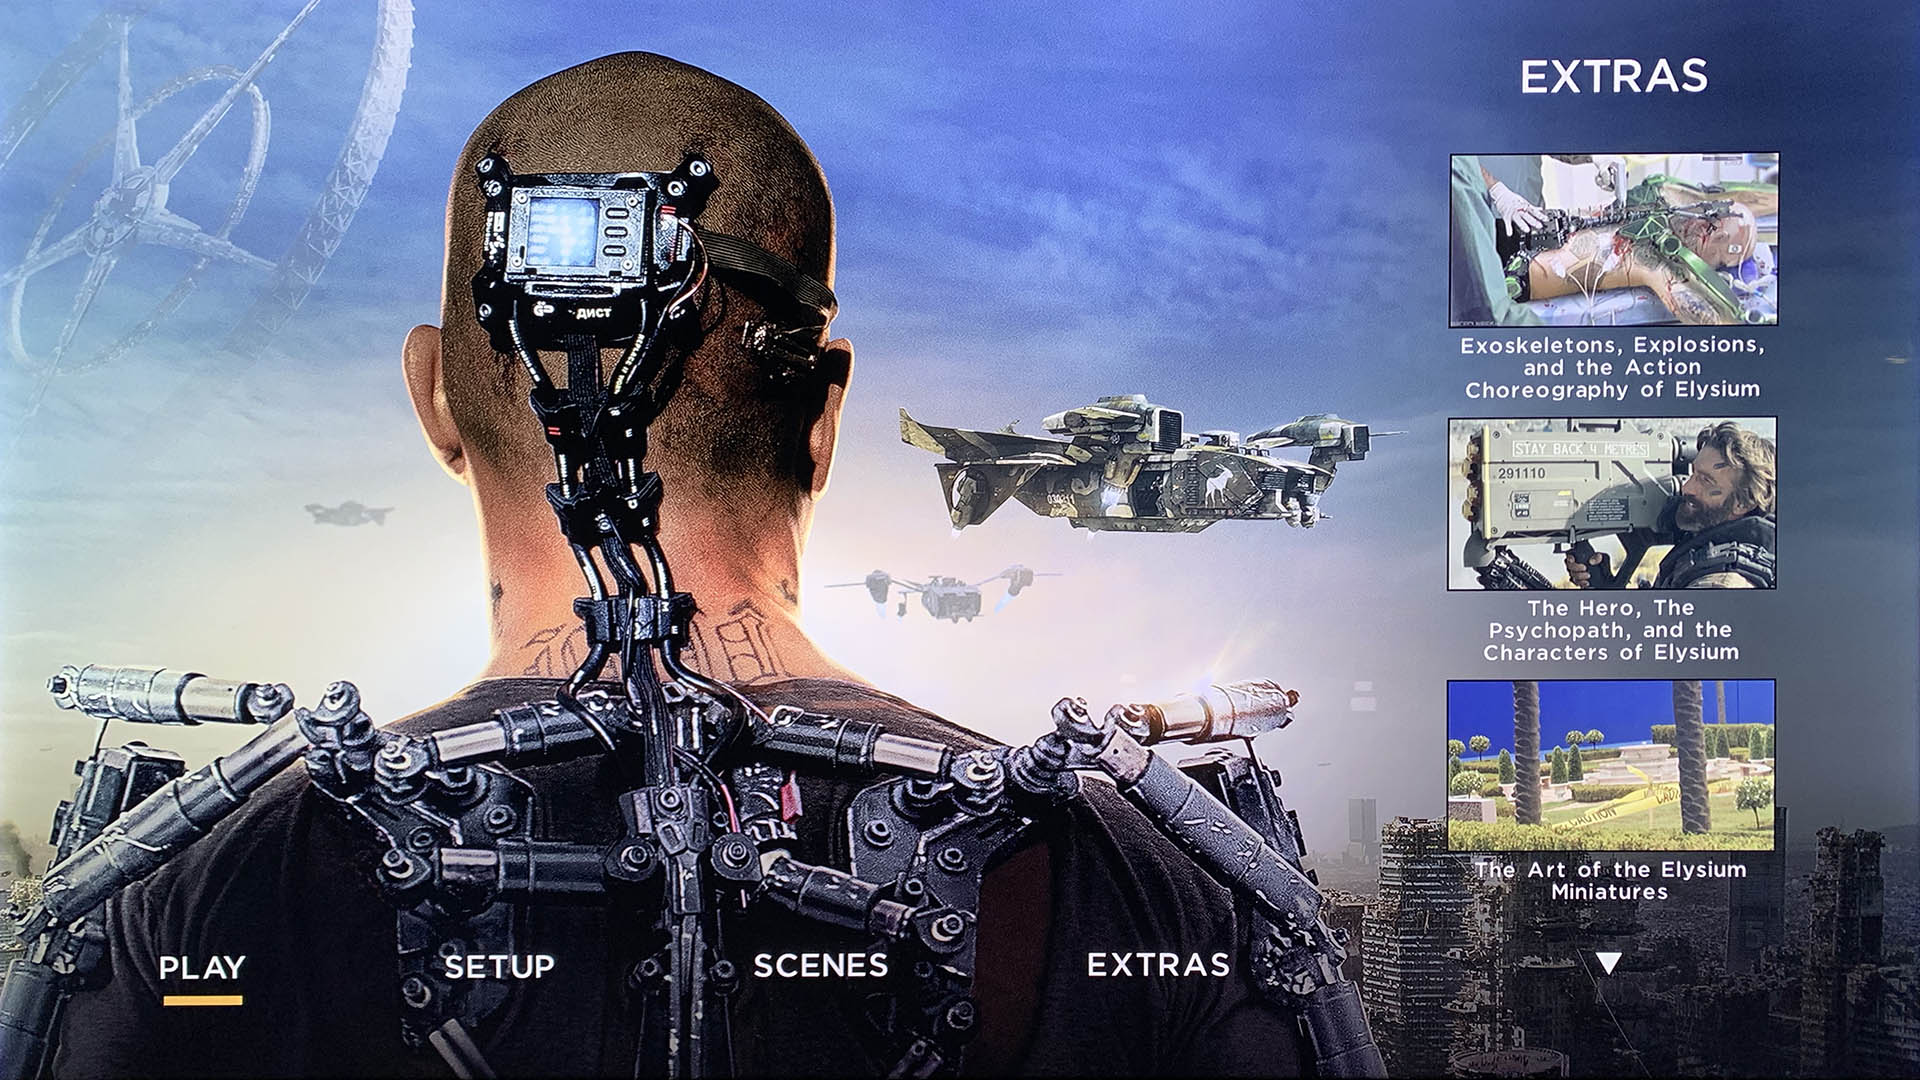 elysium 4k Blu-ray movie still